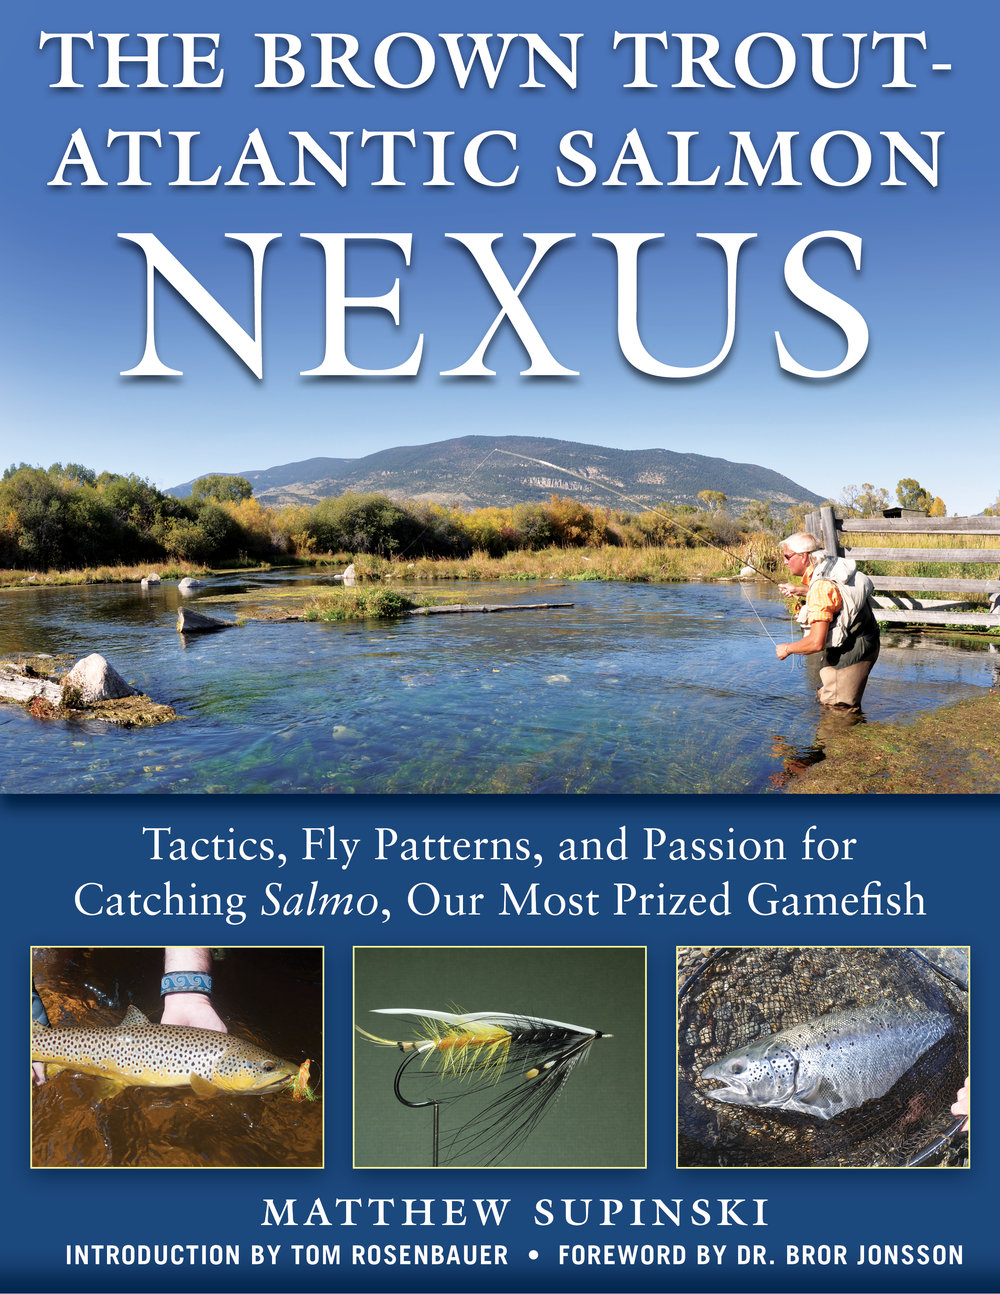 NEW COVER NEXUS 1Brown  Trout-Atlantic Salmon Nexus (1).jpg